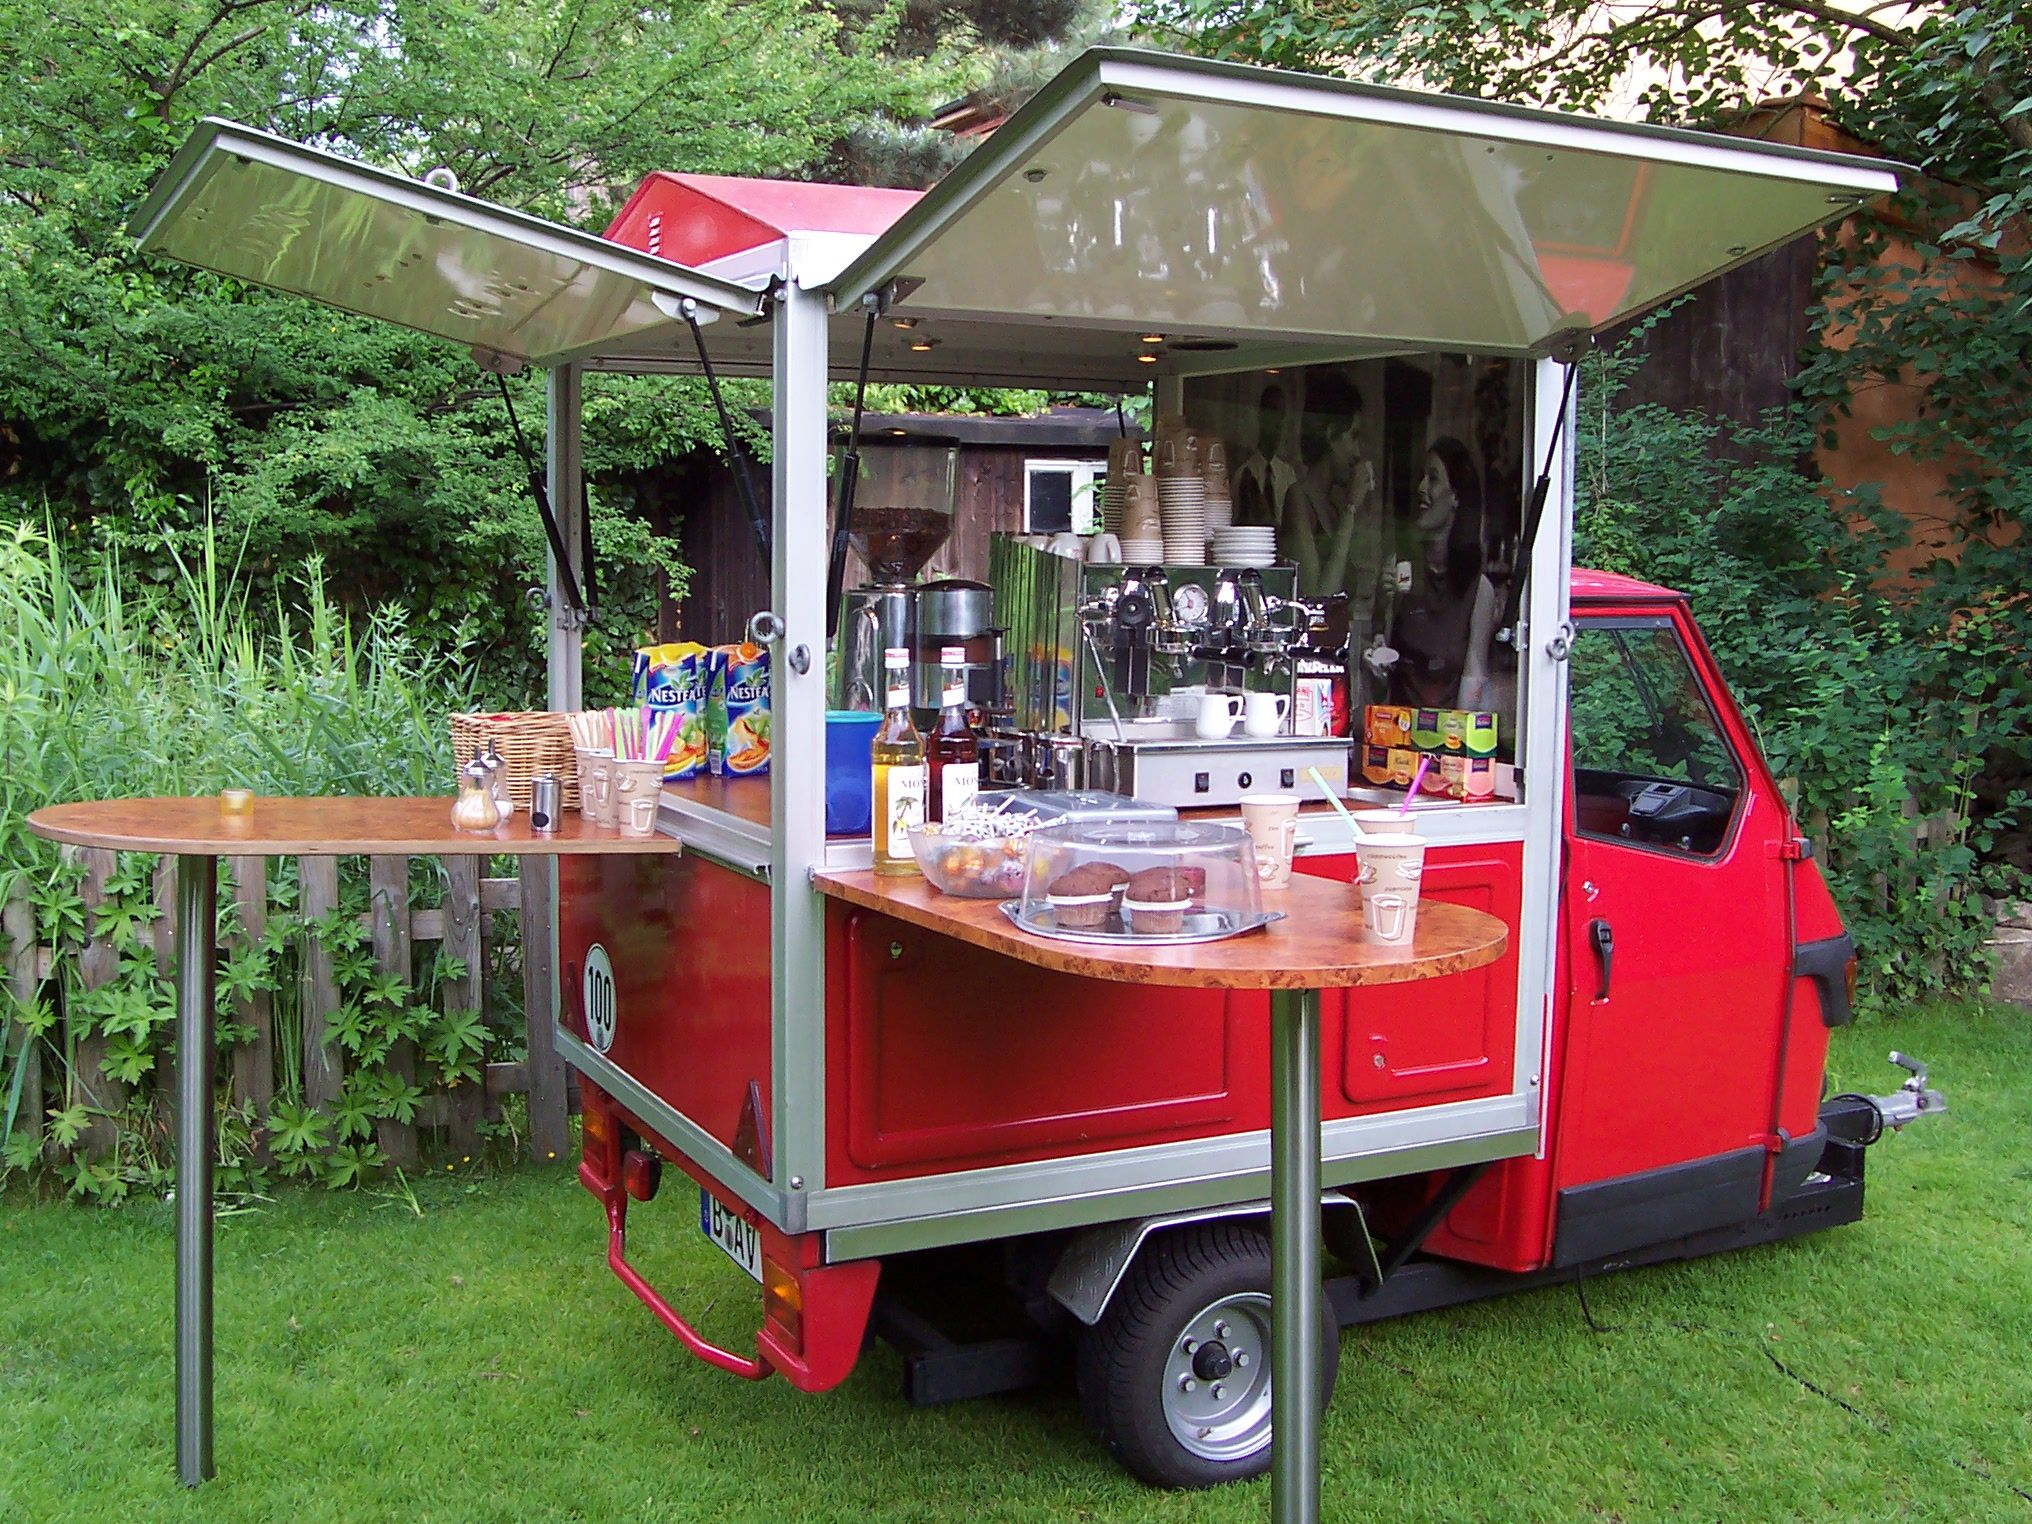 Mobile Küche Anhänger Espresso And Co Mobile Espresso Kaffee Bar In Berlin